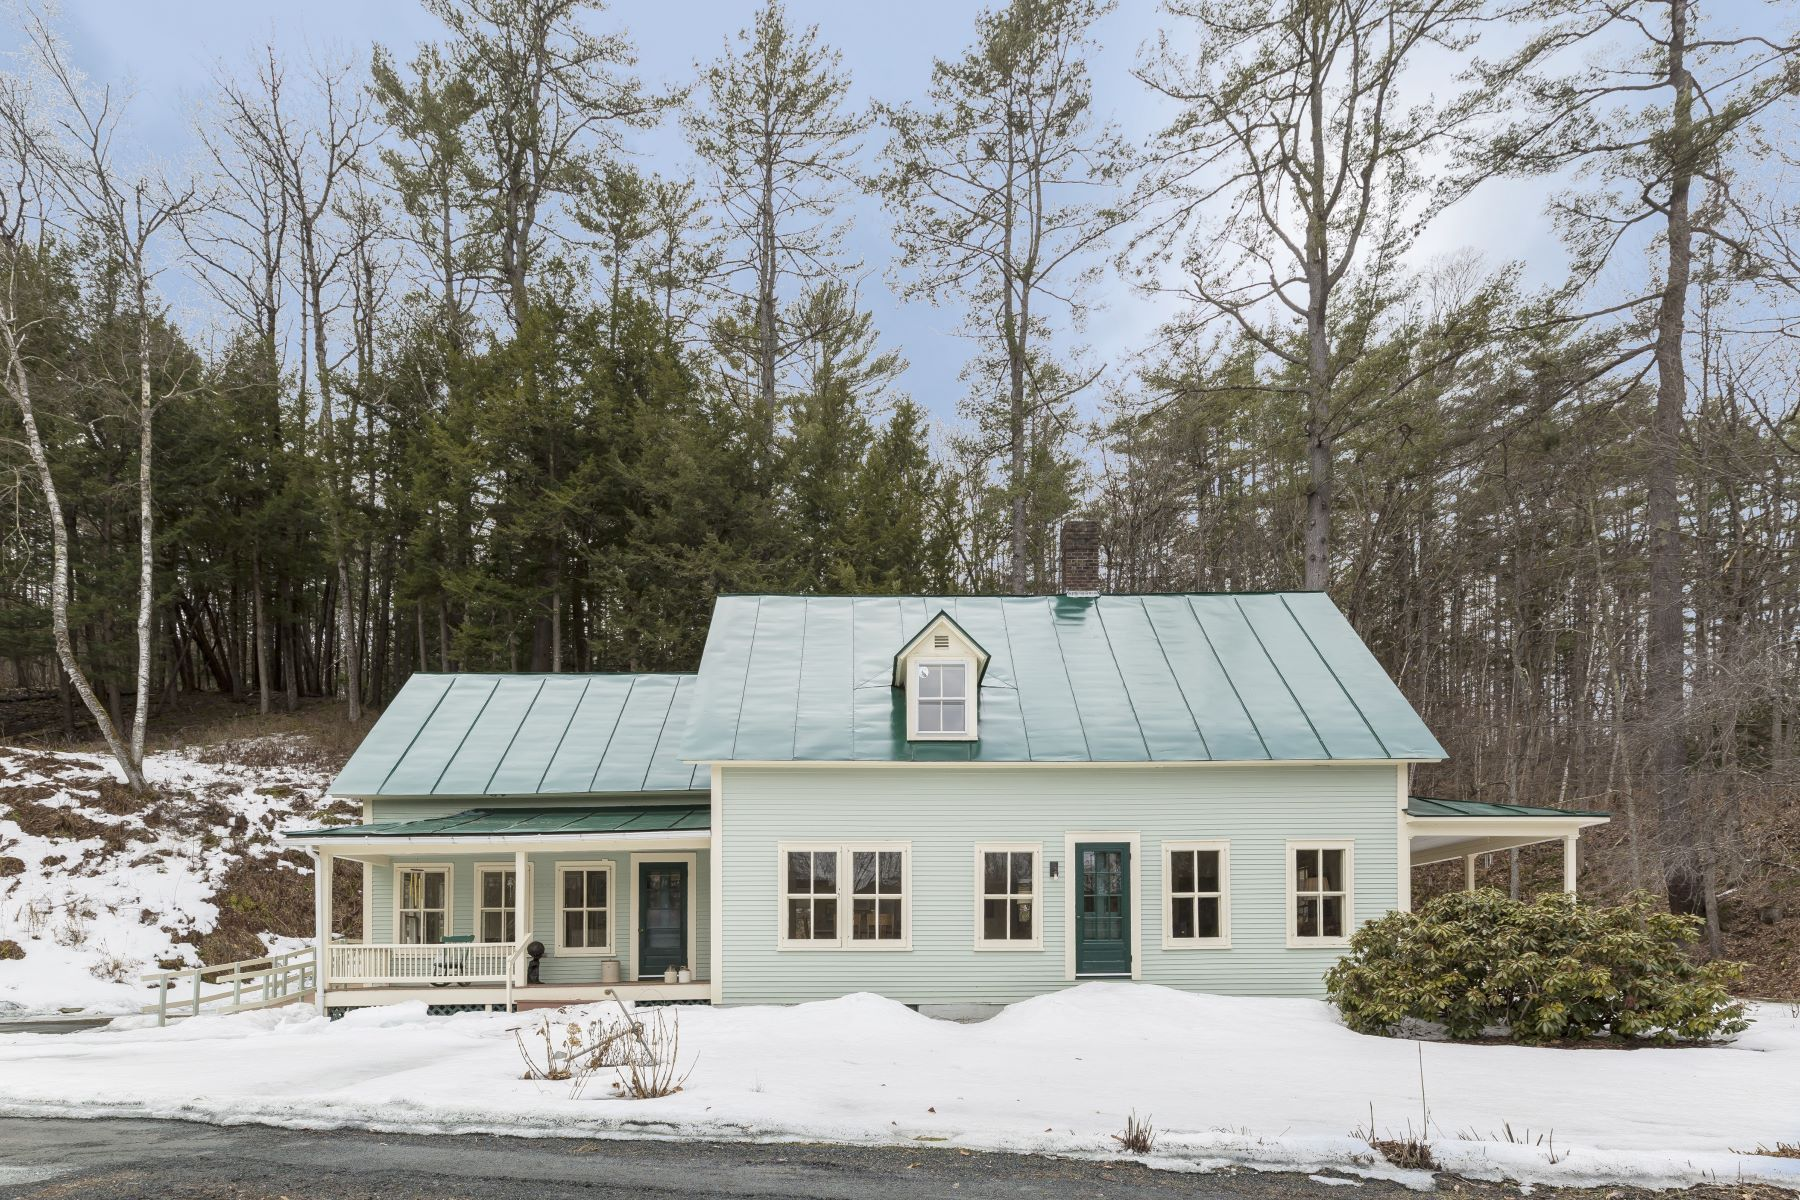 Single Family Homes for Sale at Three Bedroom Farmhouse on Ompompanoosuc River 227 Vt Route 132 Norwich, Vermont 05055 United States